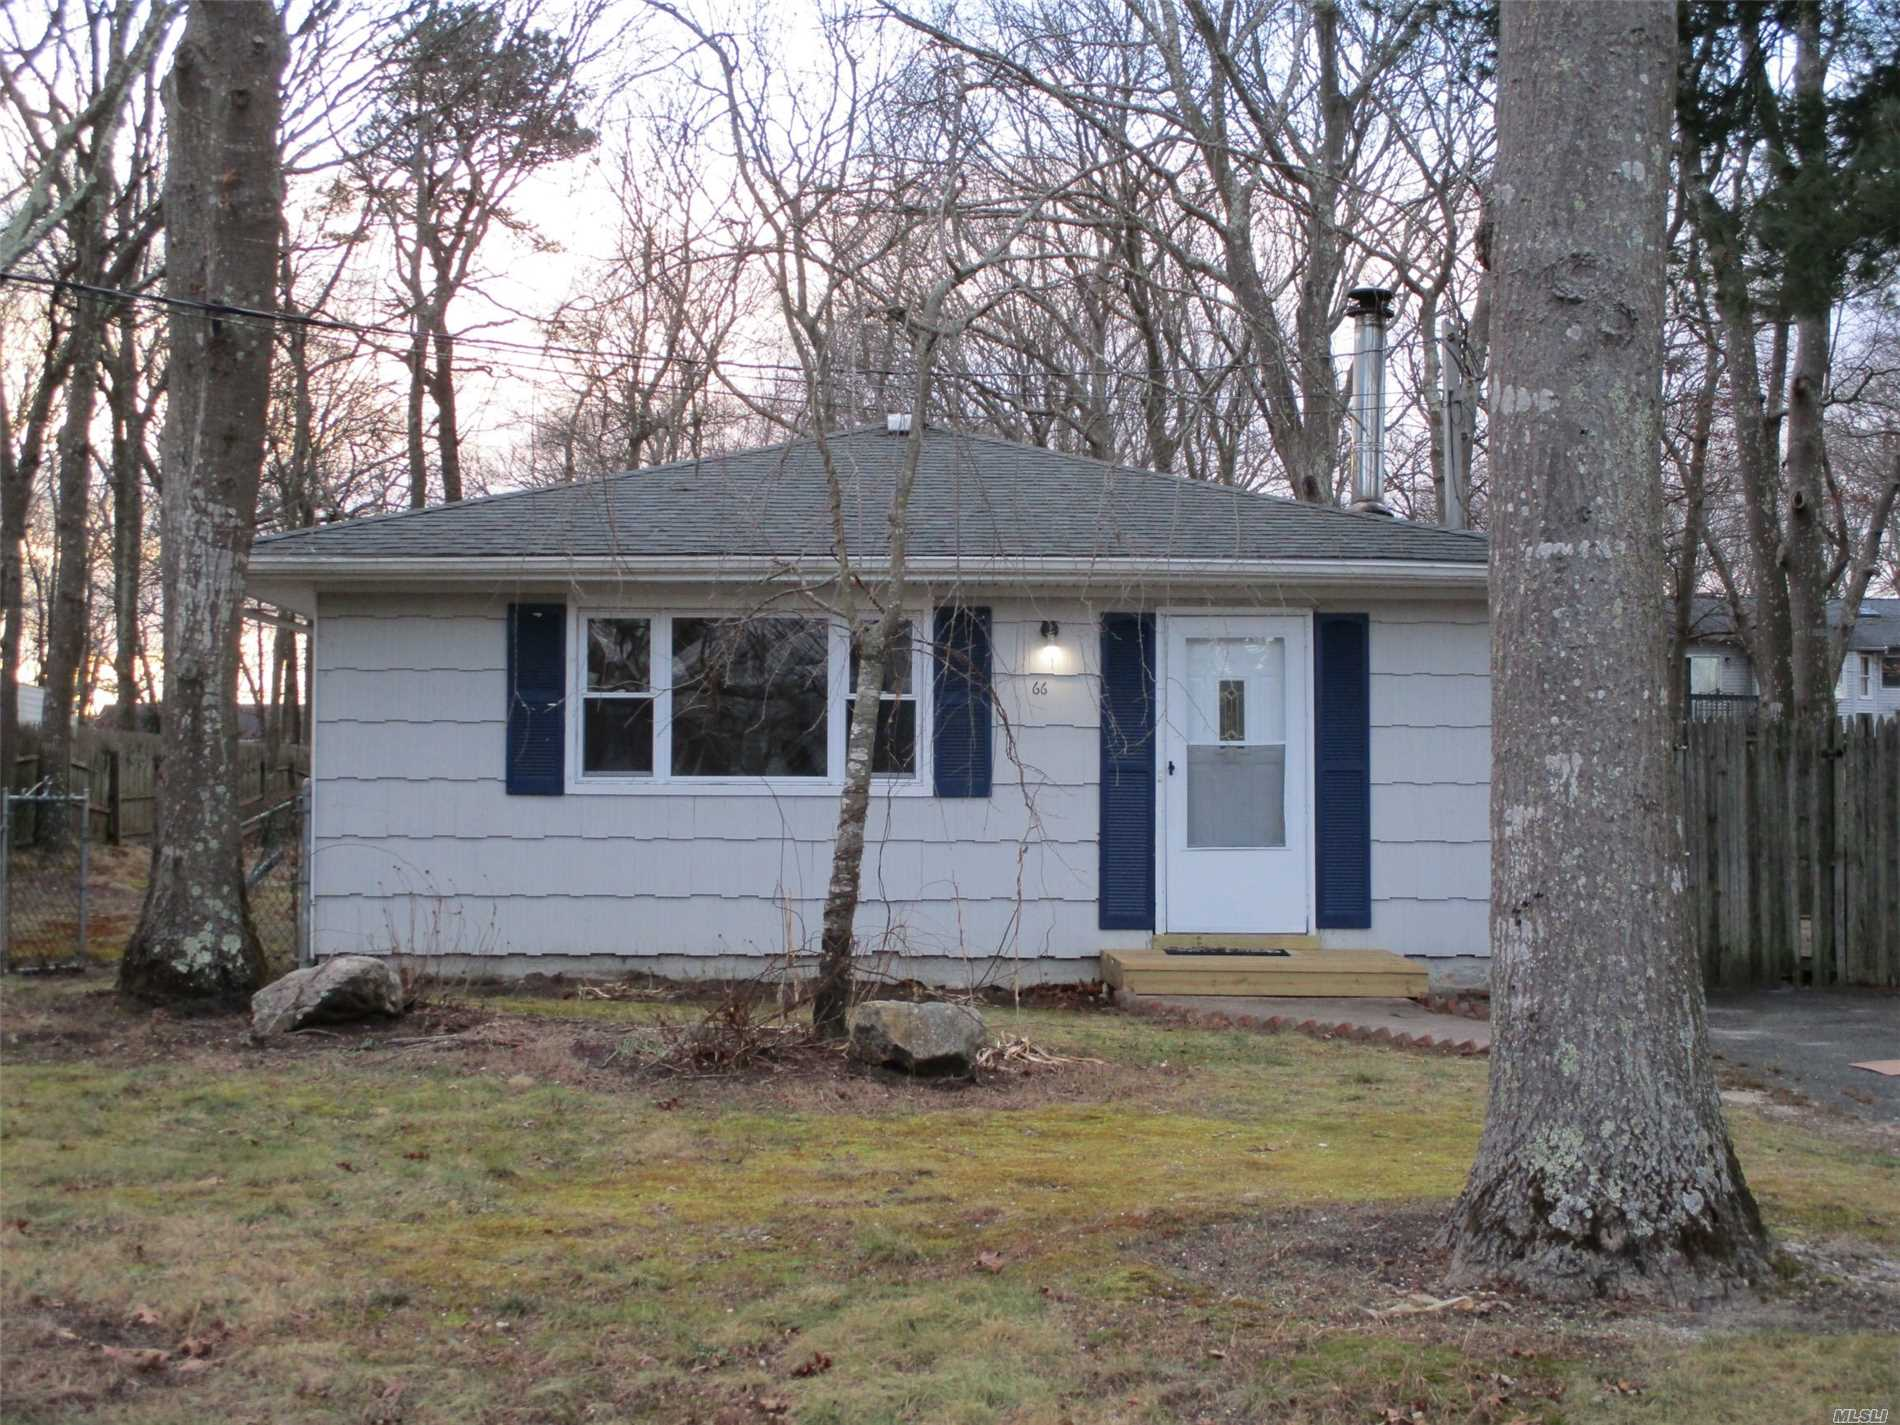 Nice 3 Br Ranch On Large Lot. Tiled Entry Hall, Lr/Dr, Carpet, Eik, 3 Spacious Brs, Lg. Full Bath, Wood Deck Off Side Entry, Quiet Neighborhood, Close To Schools, Shopping, Lirr, Smithpoint Beaches.